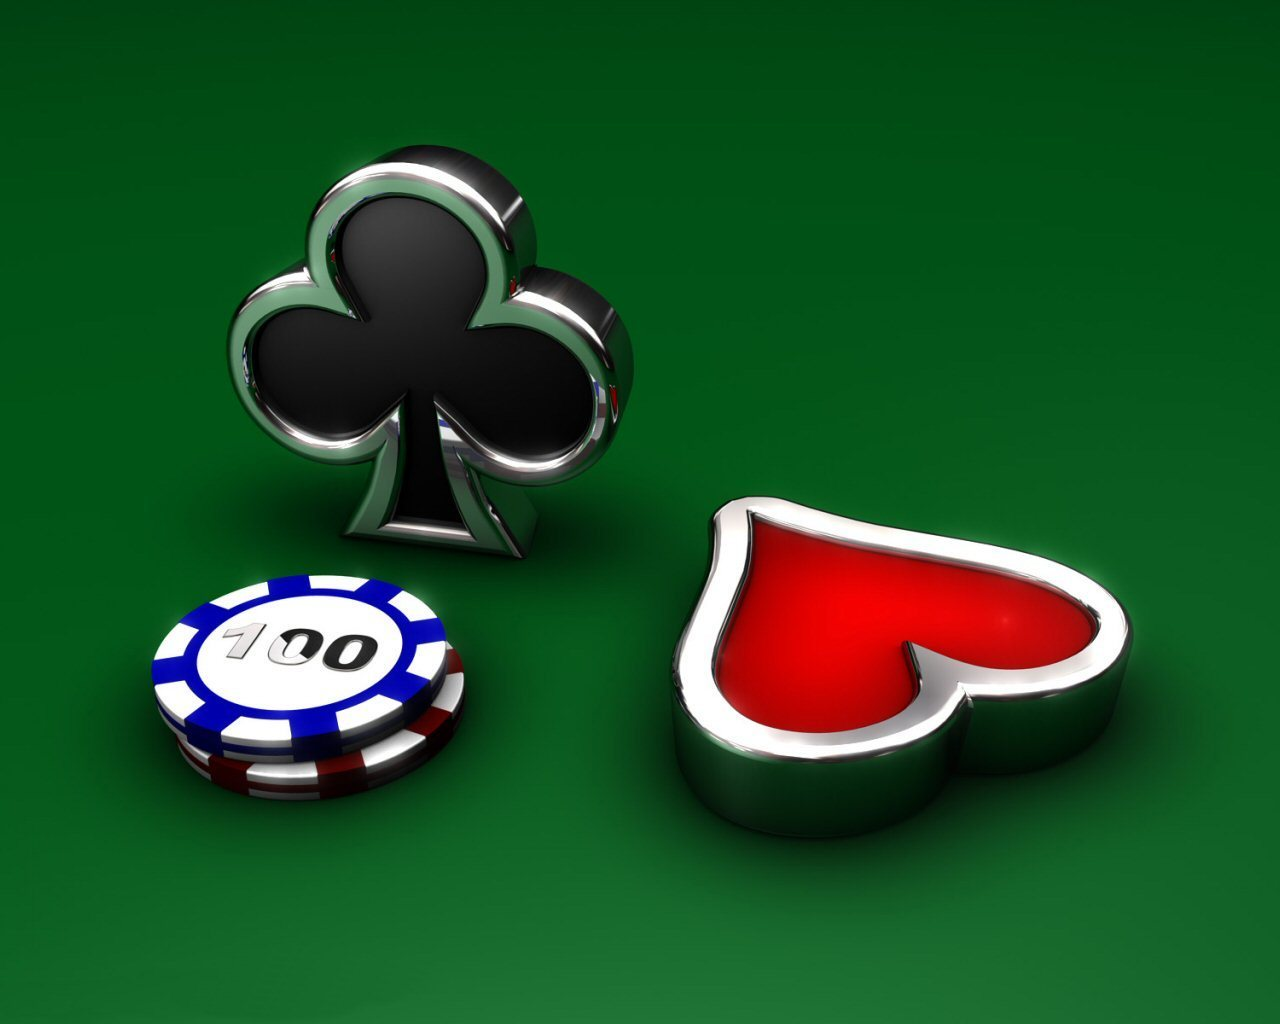 Monte carlo poker chips uk